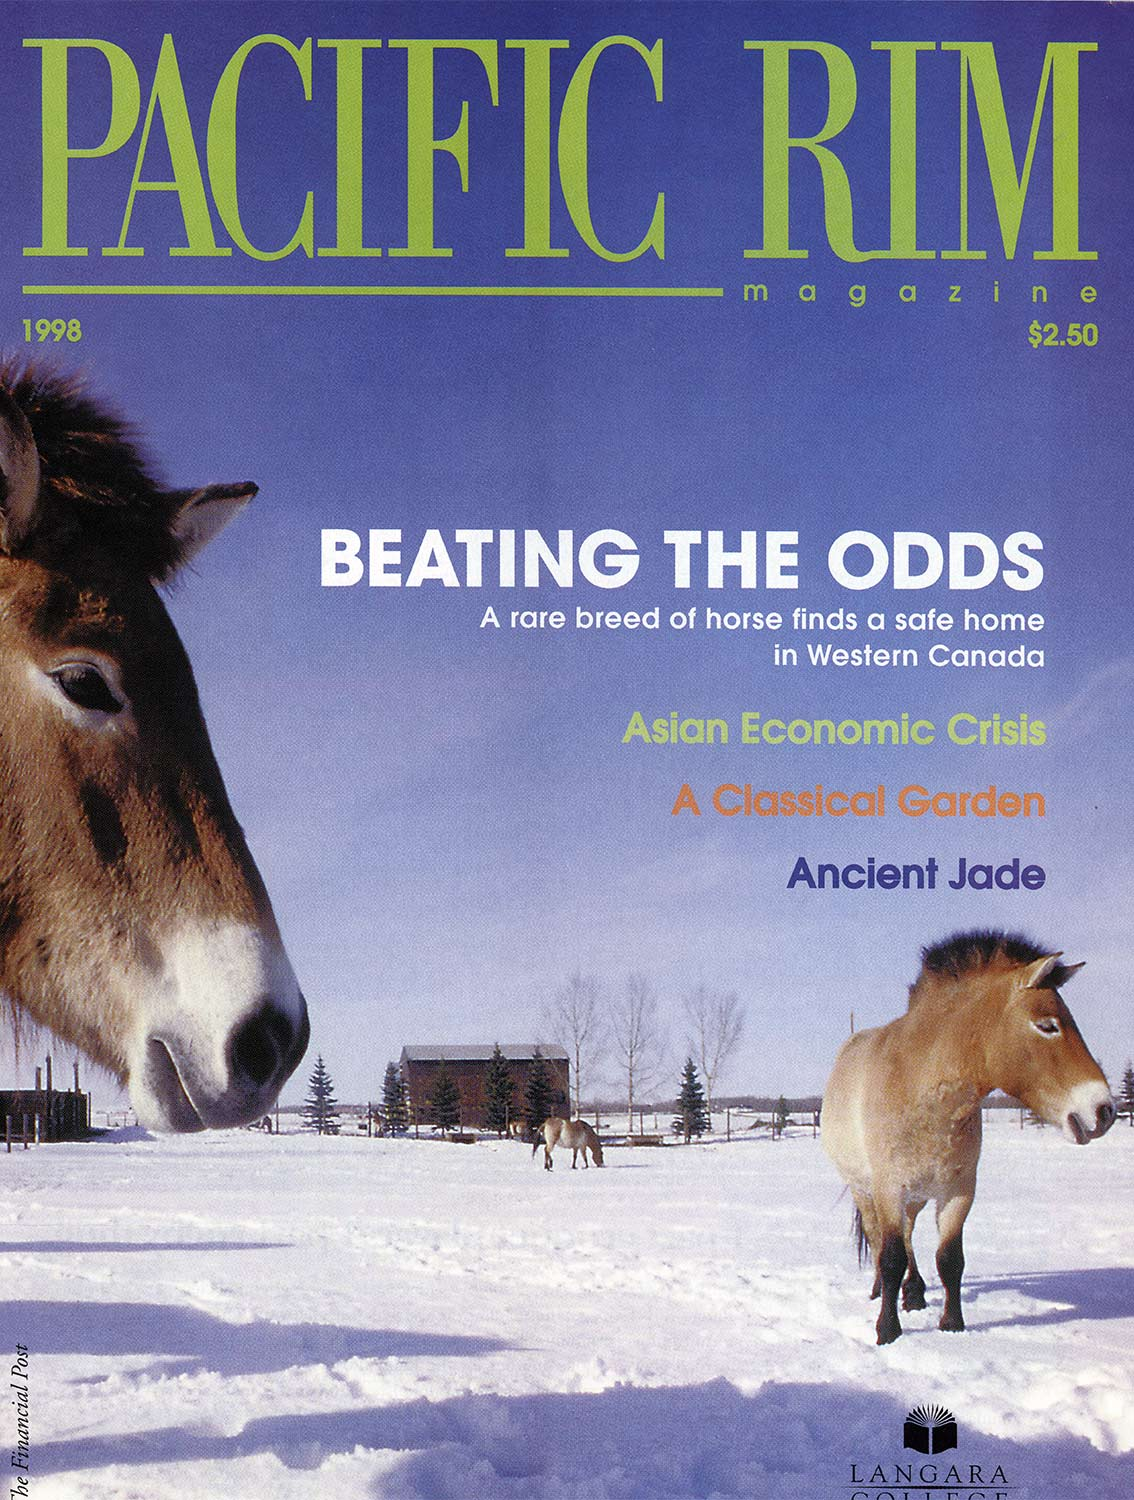 "1998 Pacific Rim Cover. ""Beating the odds."" Cover Story. Image of rare horse breeds."